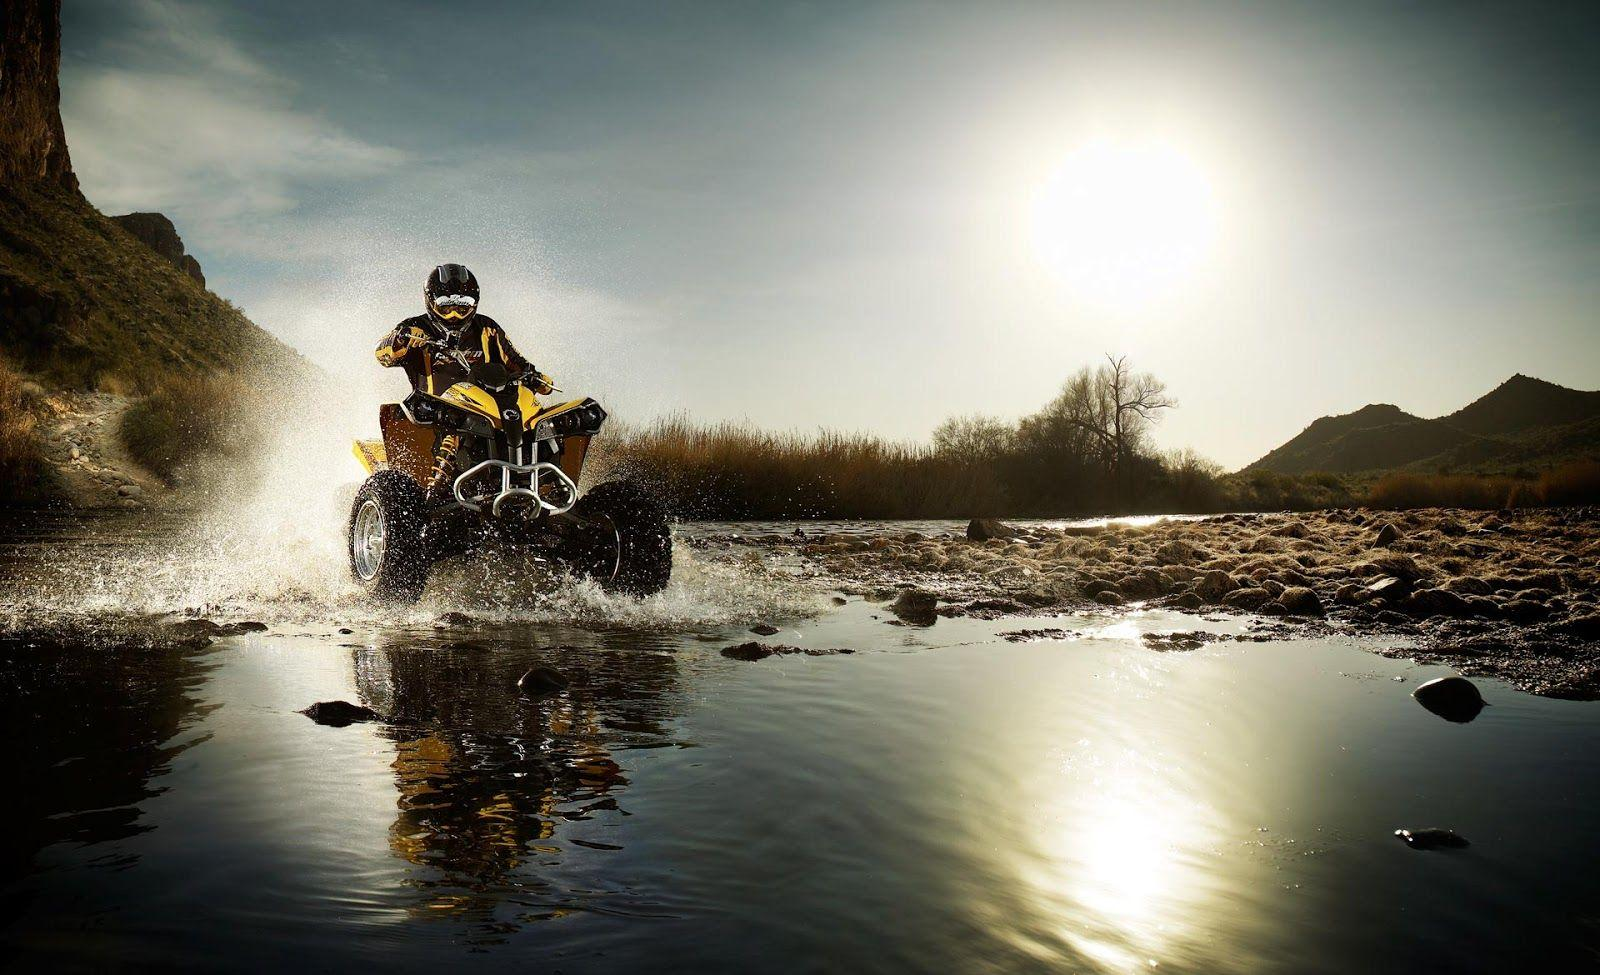 Bikes & quads hd wallpaper, dirt bikes